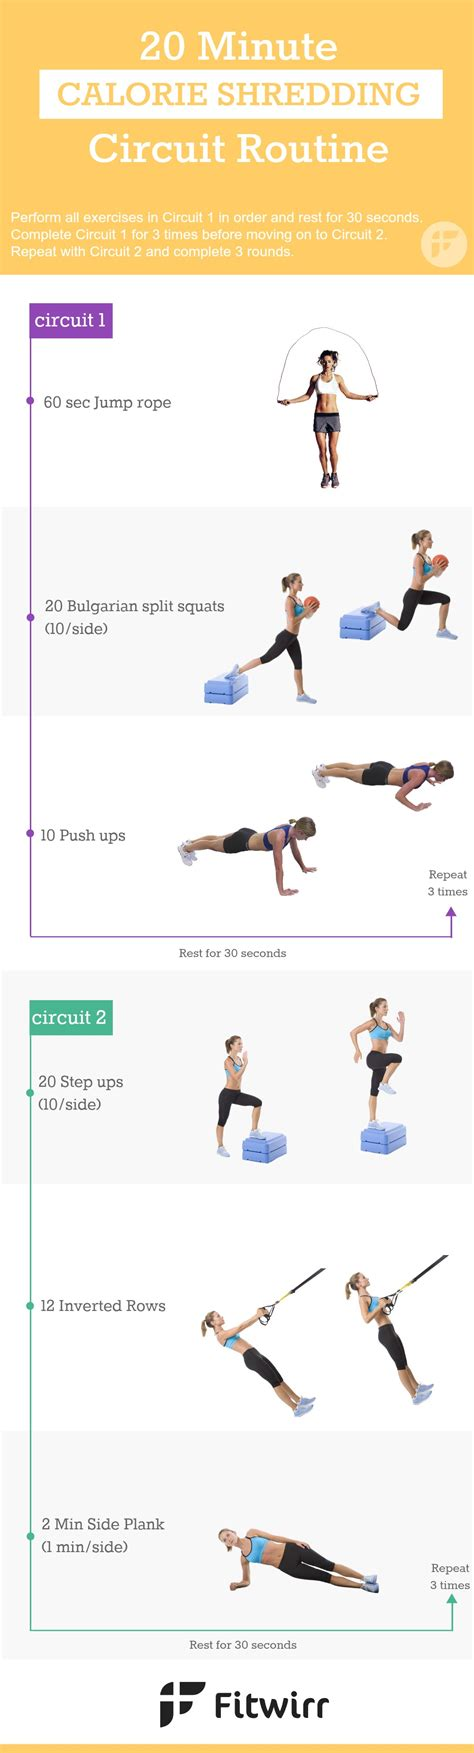 weight loss boot camps picture 13